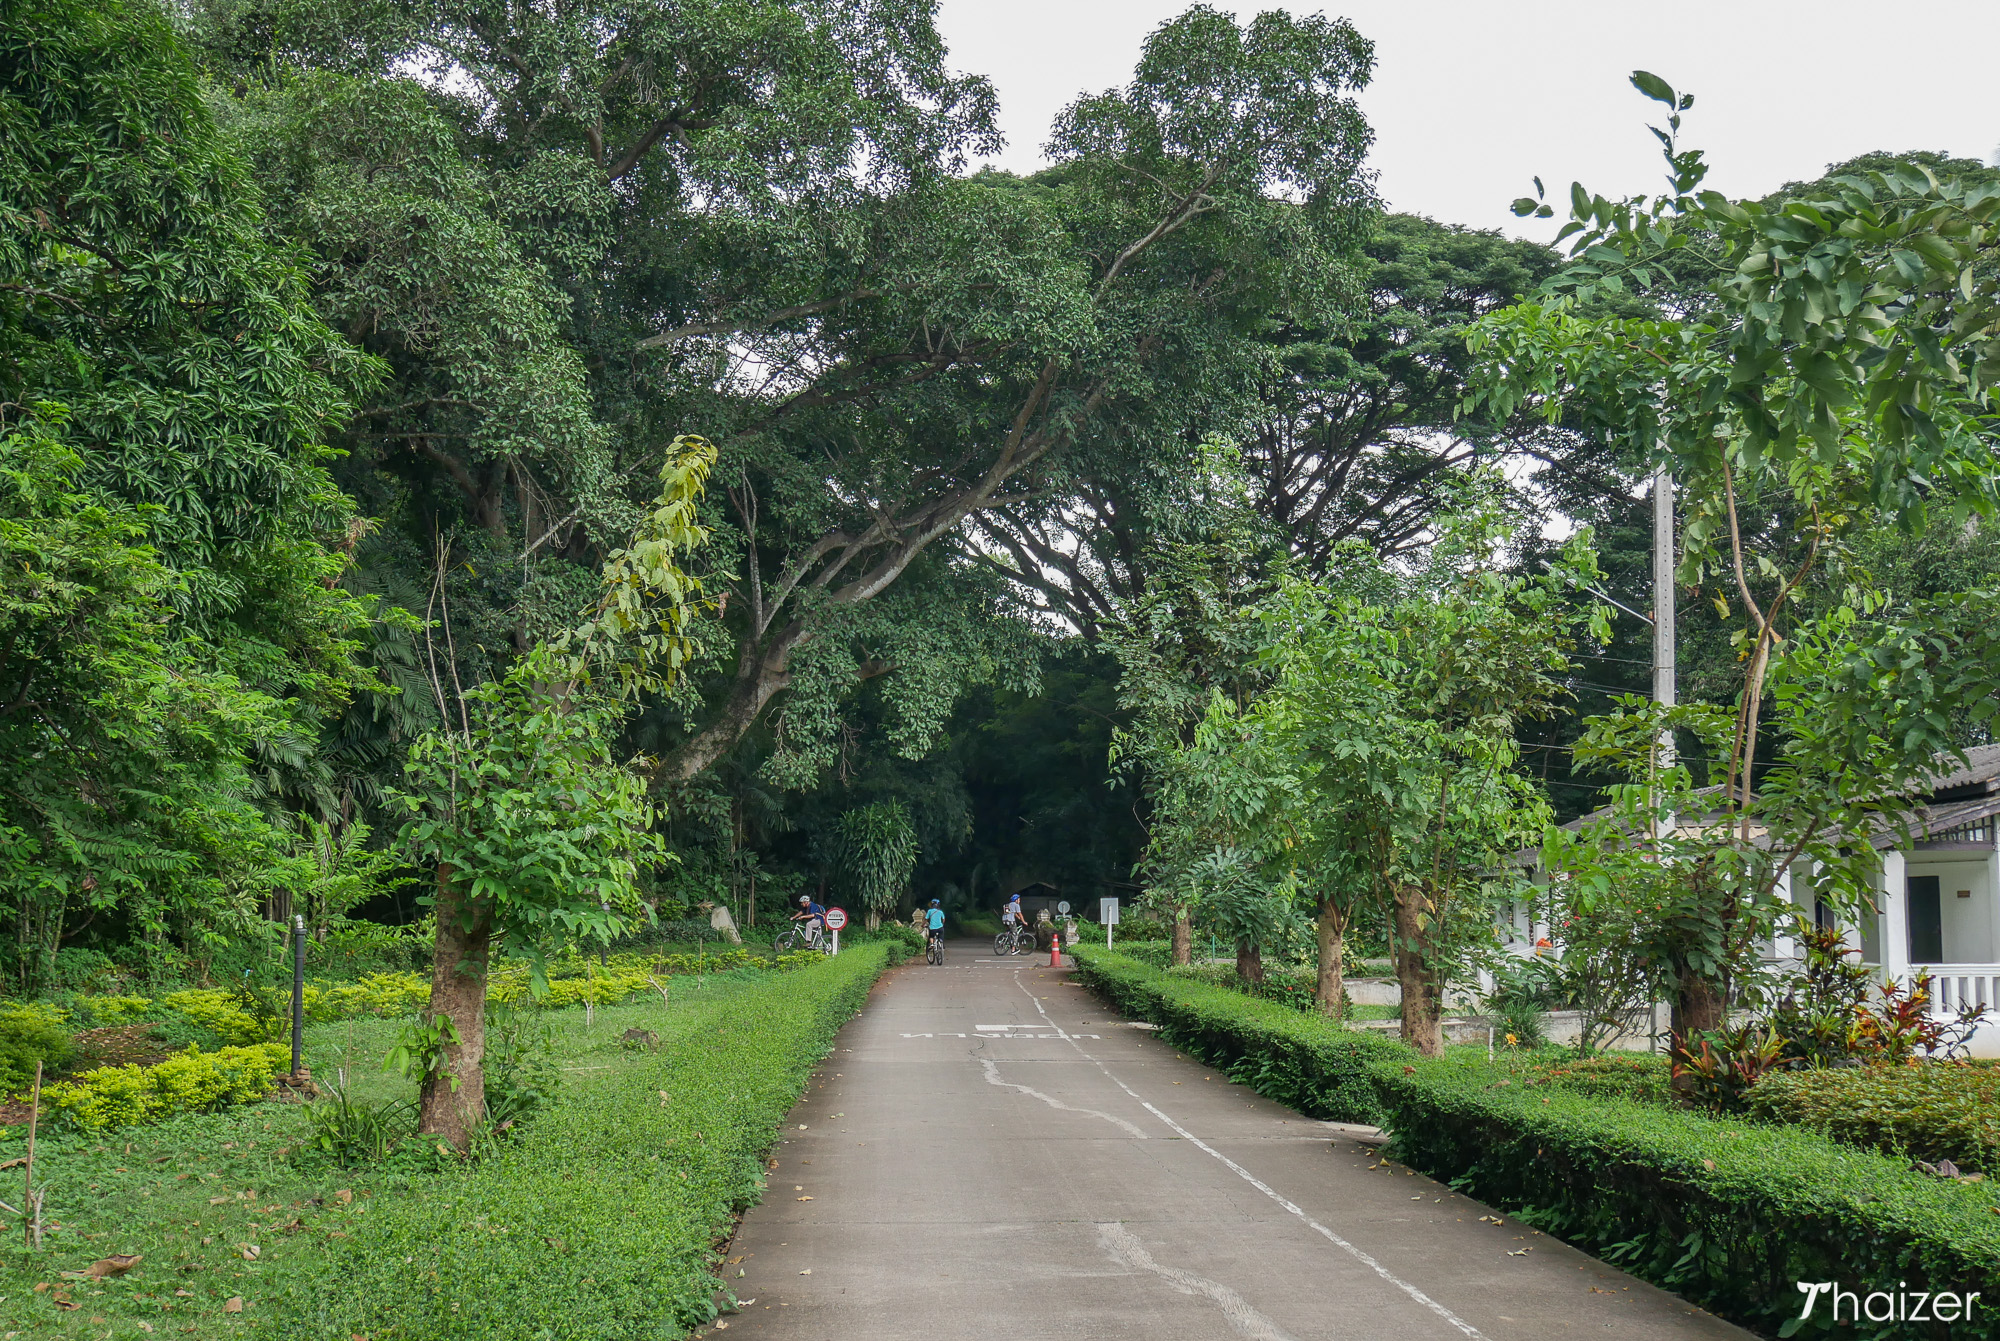 McKean Hospital and Dok Kaew Gardens in Chiang Mai